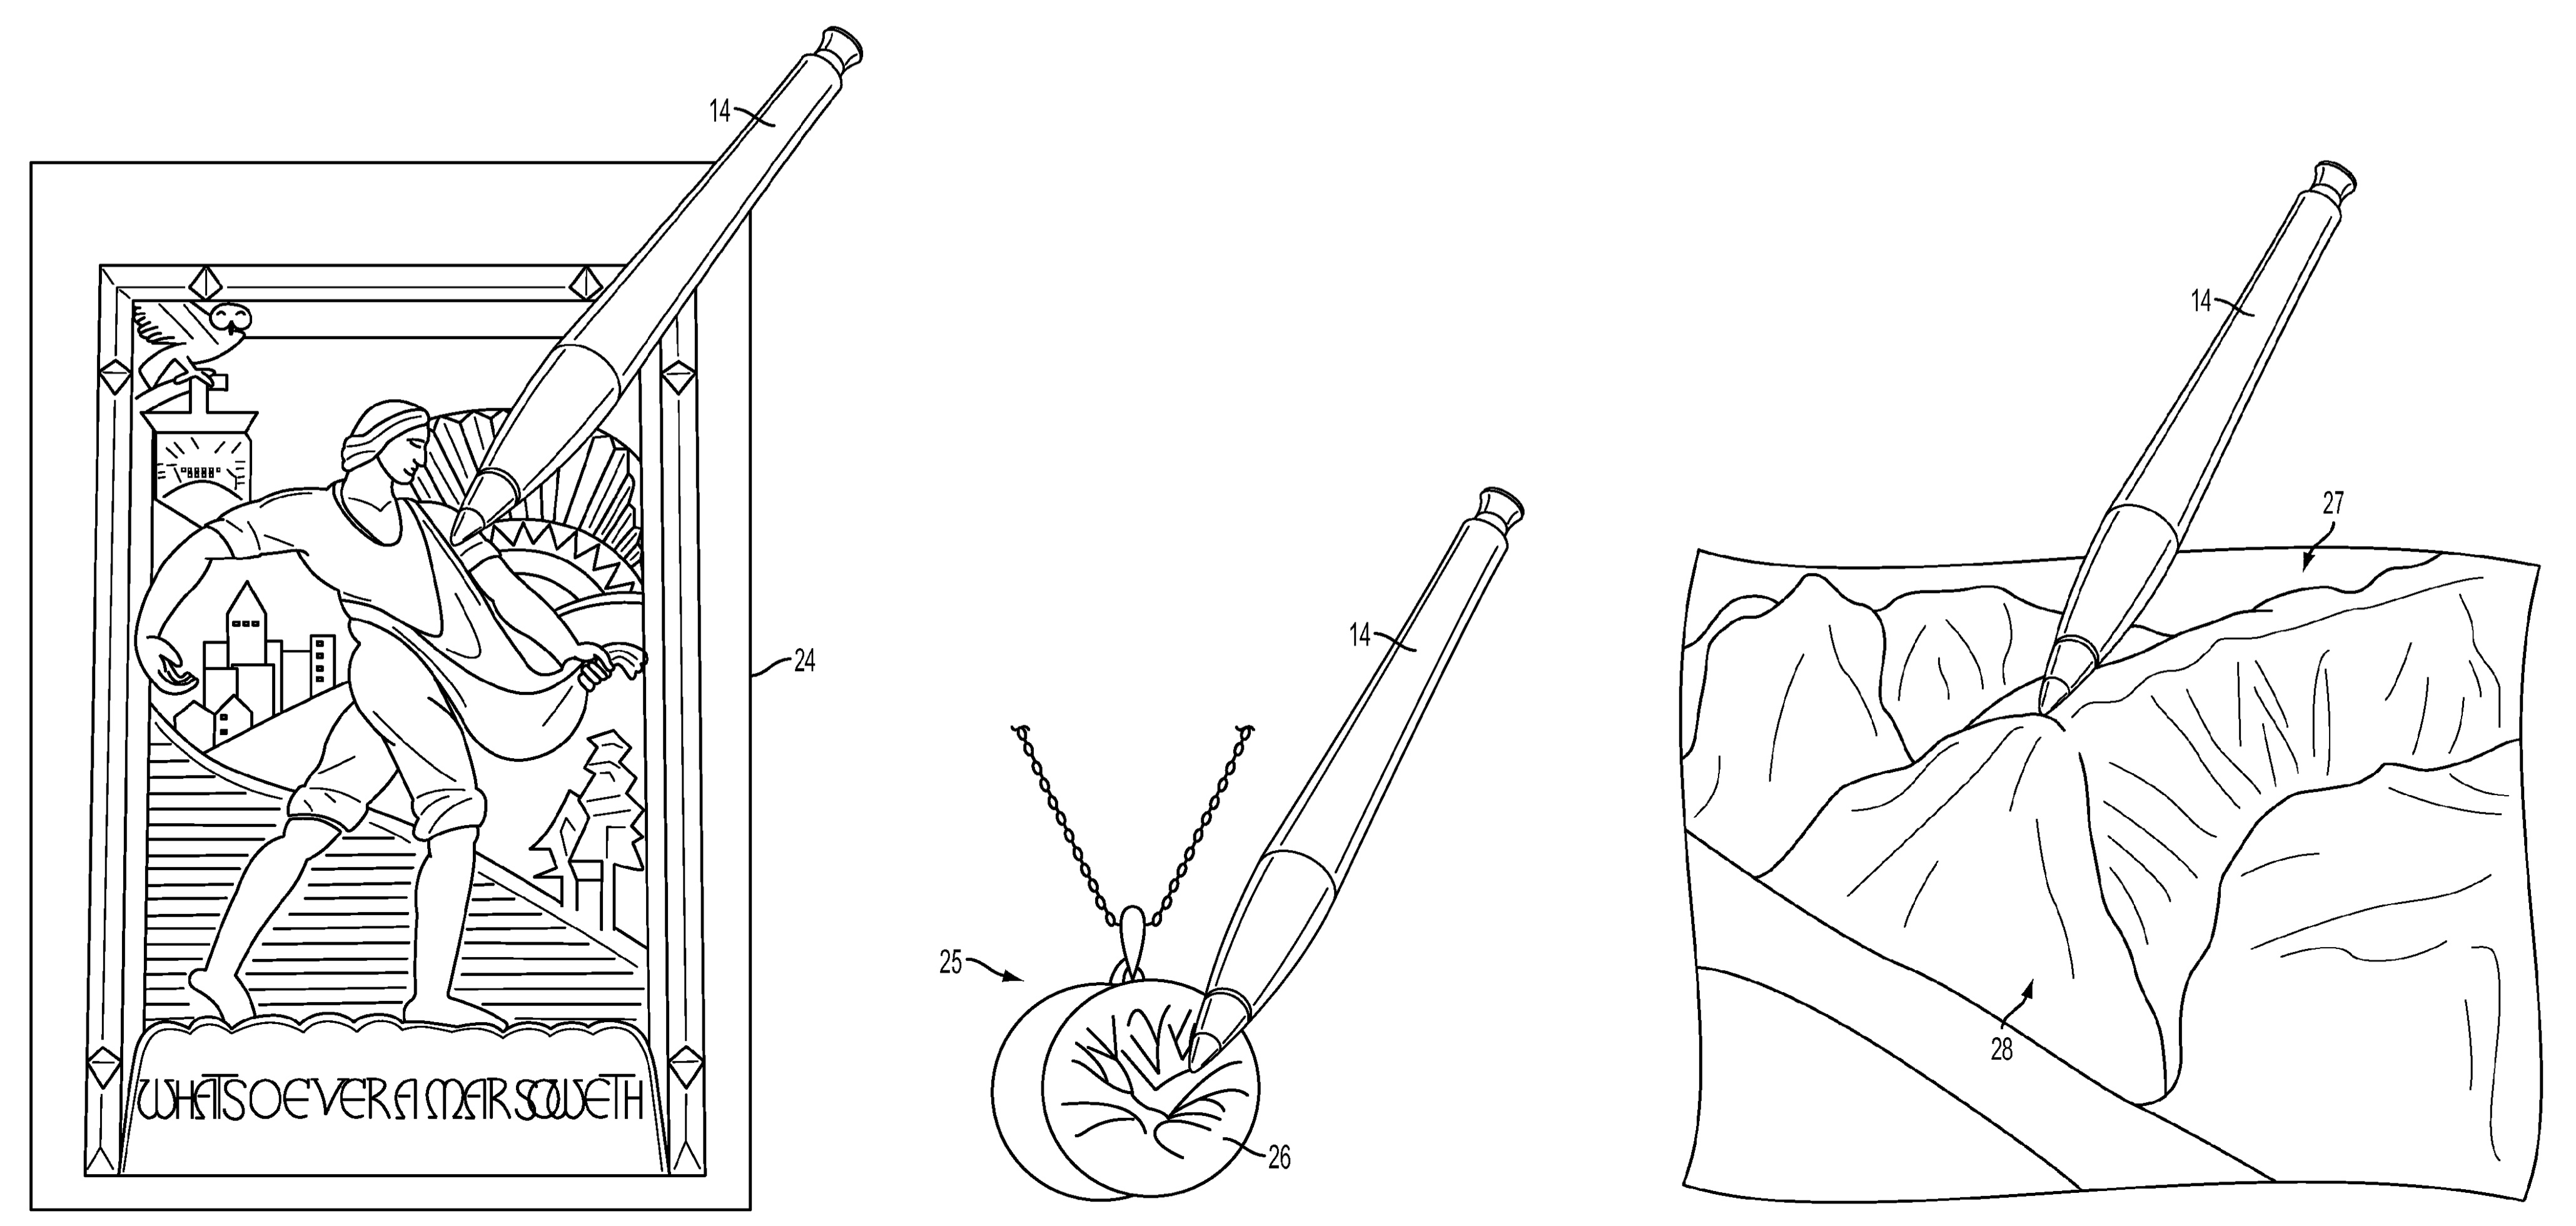 Apple texture sensing stylus patent drawing 003